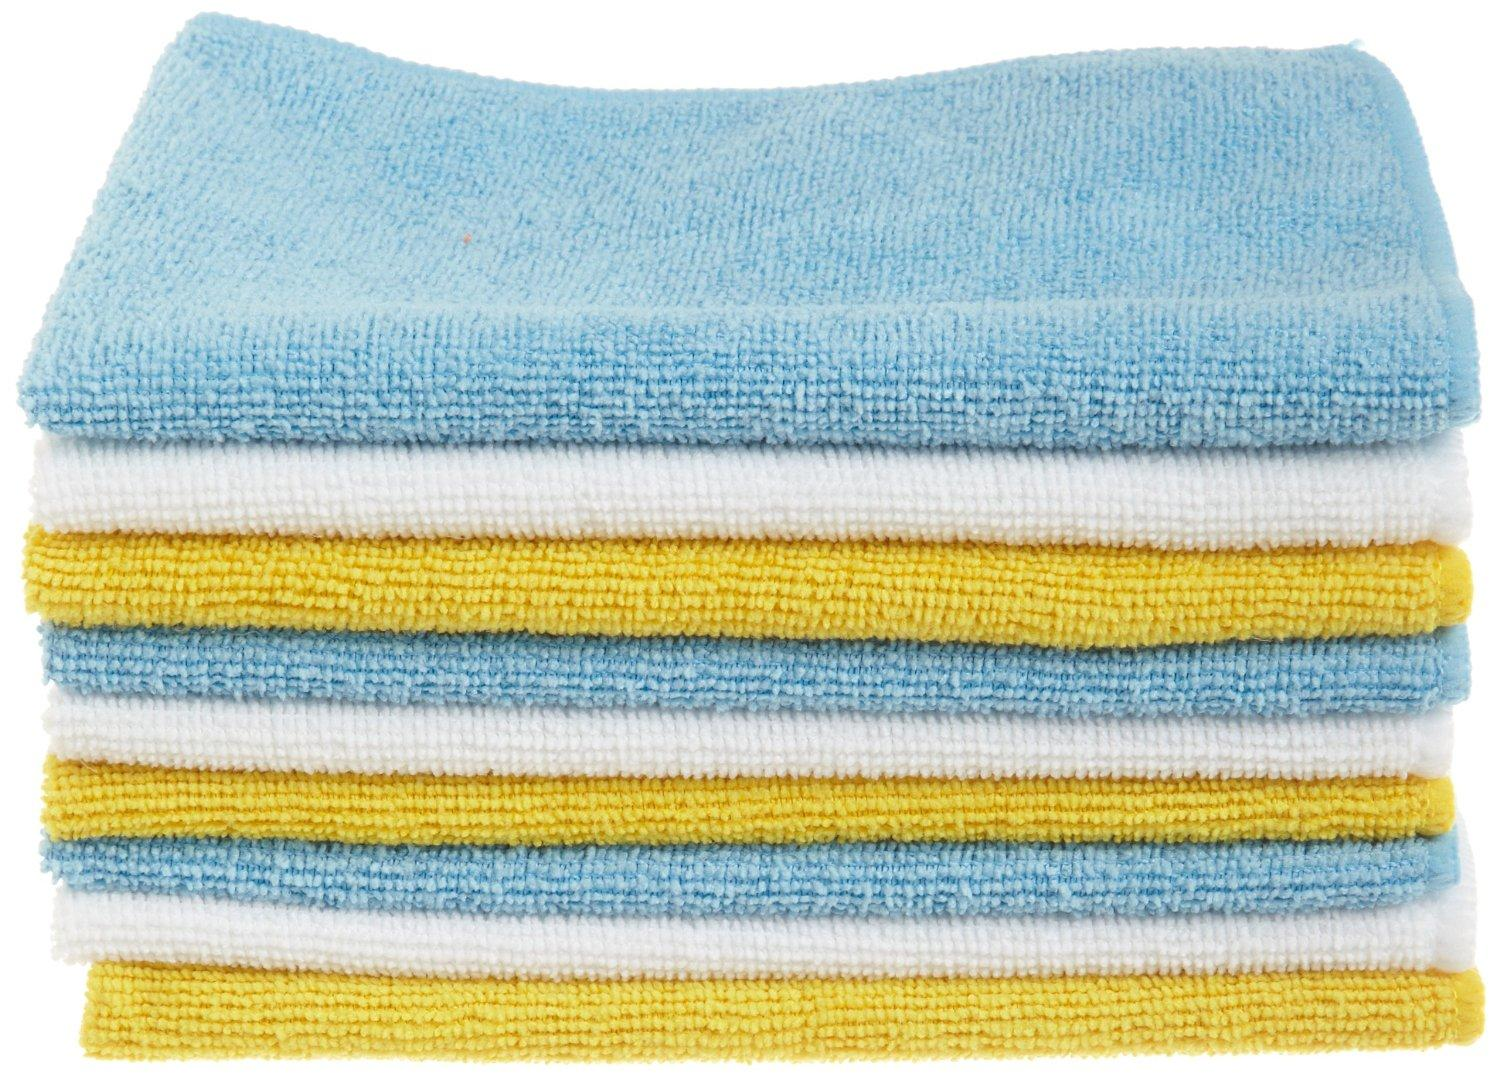 $8.4 AmazonBasics Microfiber Cleaning Cloth - 24 Pack